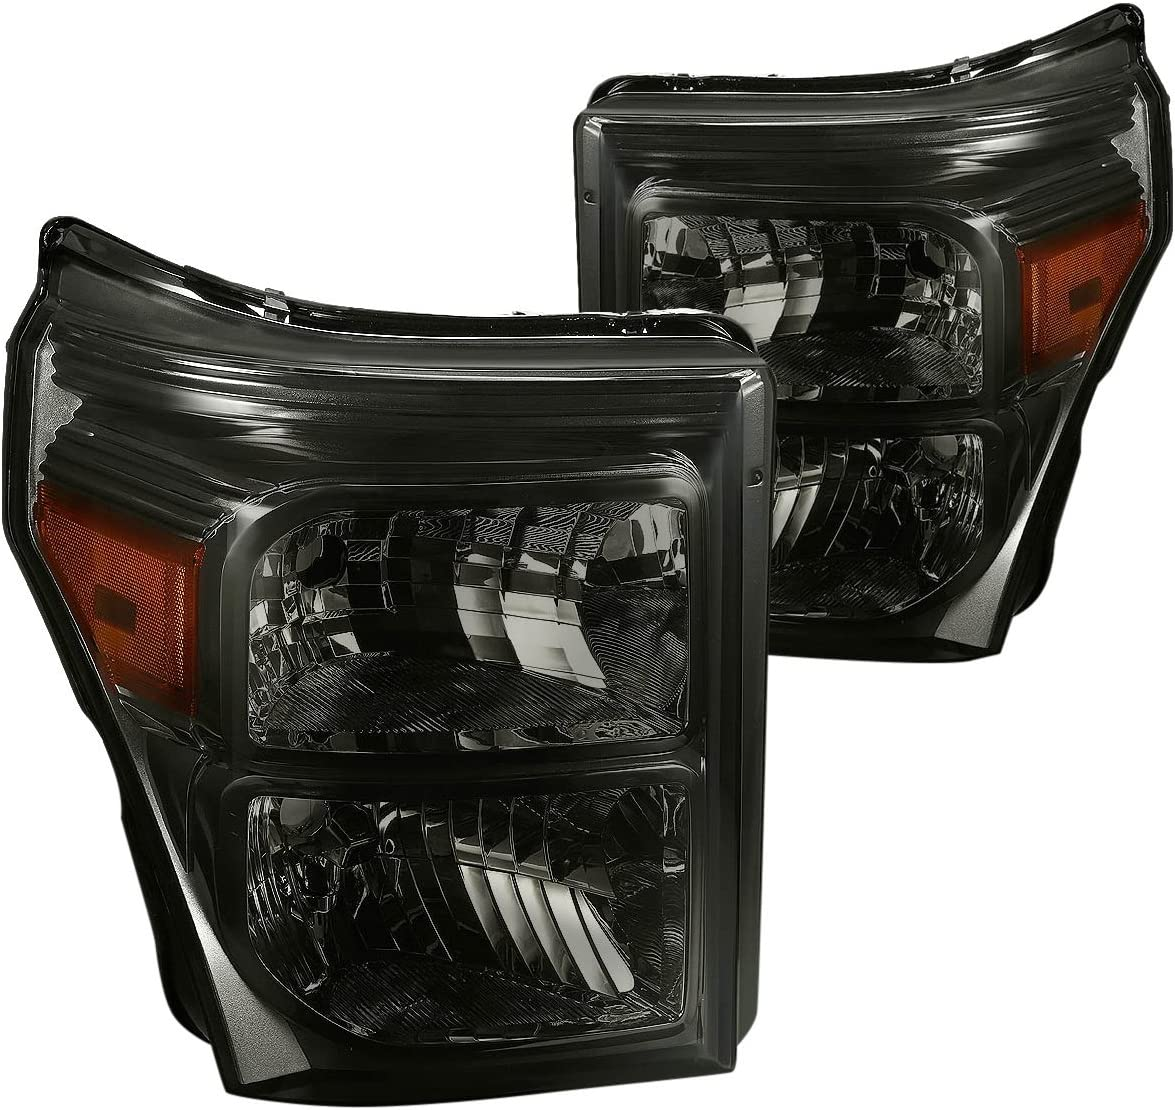 sold out DNA Motoring HL-OH-FSU13-SM-AM New product type Smoke Lens Headlights Repla Amber